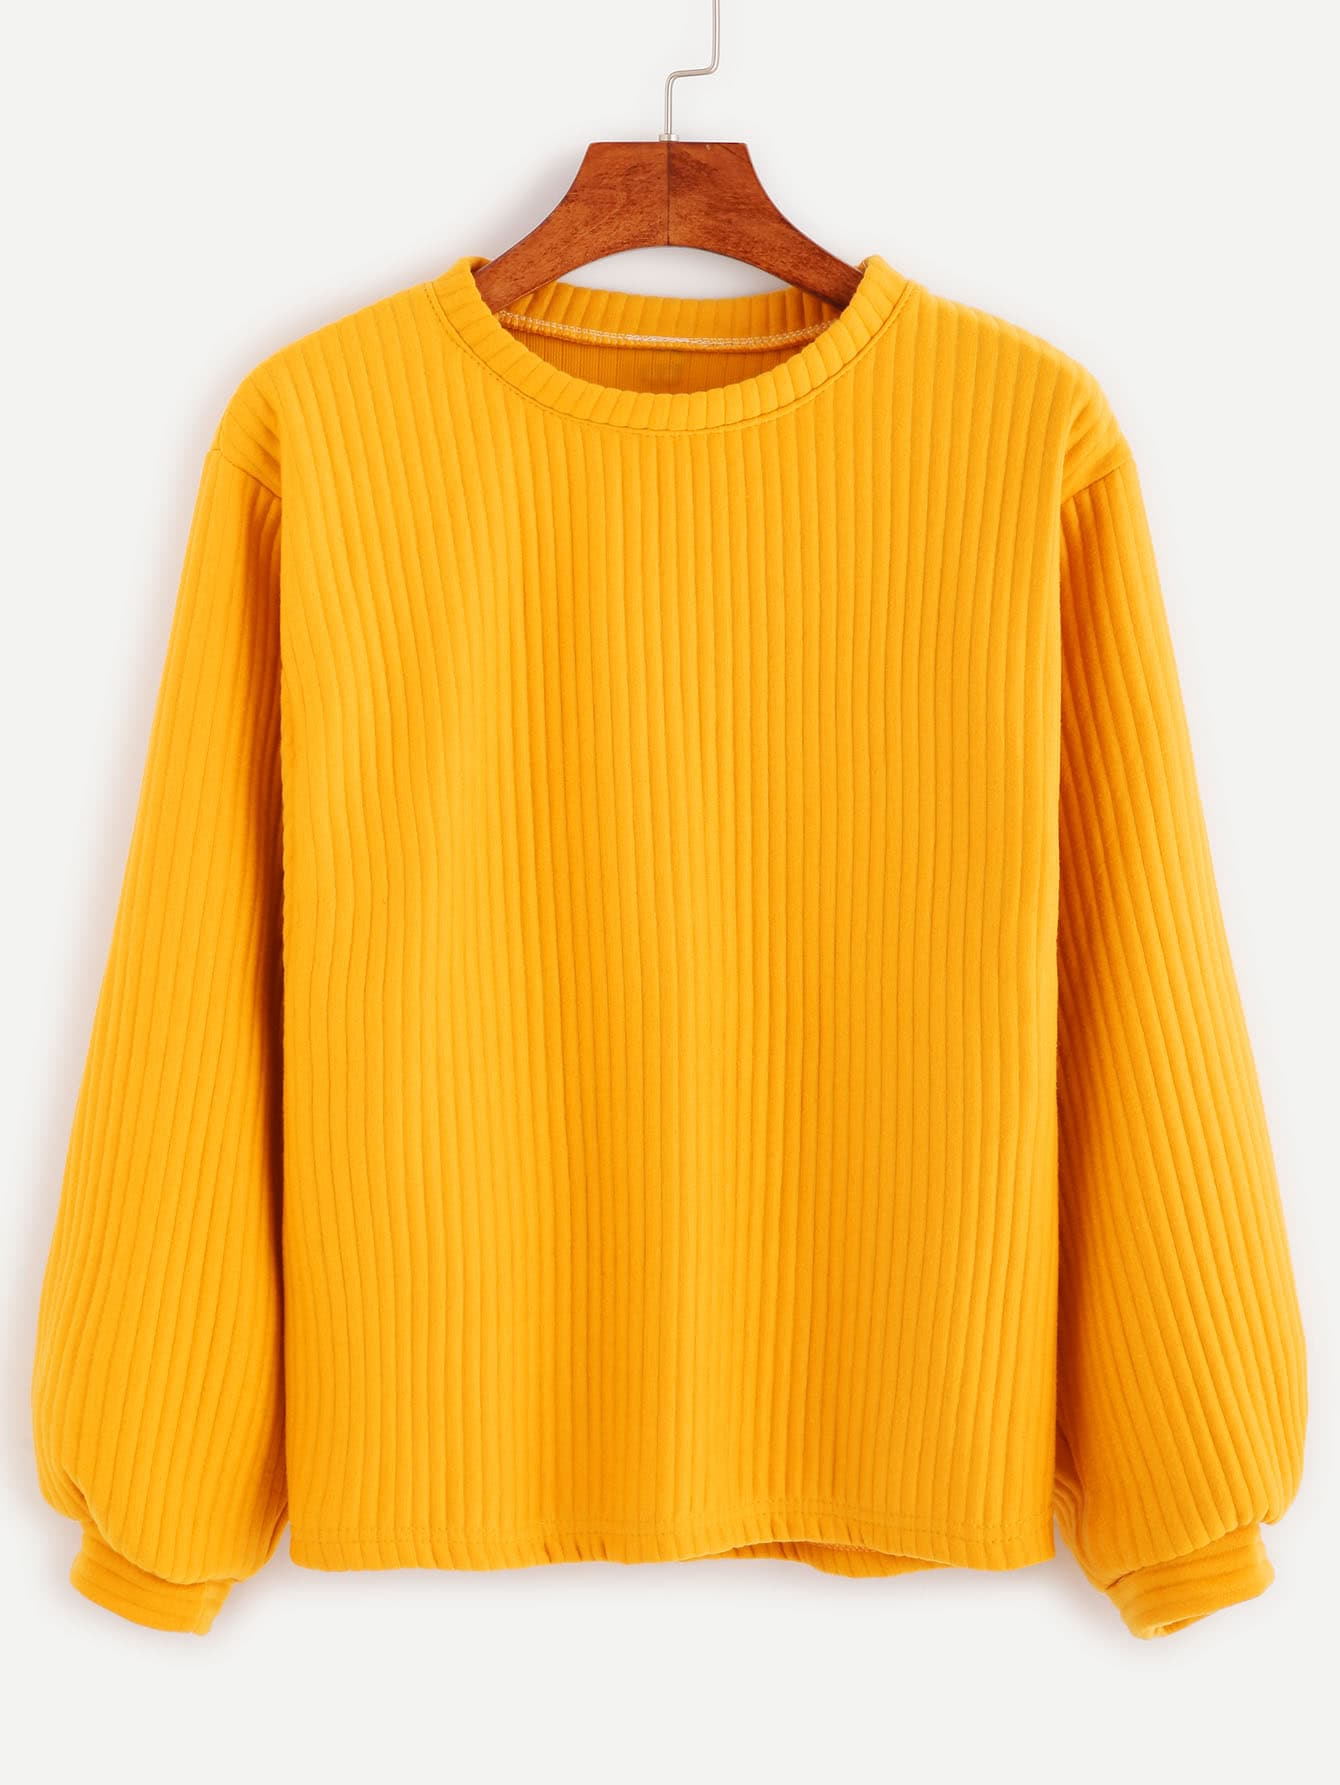 Ribbed Knit Sweatshirt -SheIn(Sheinside)